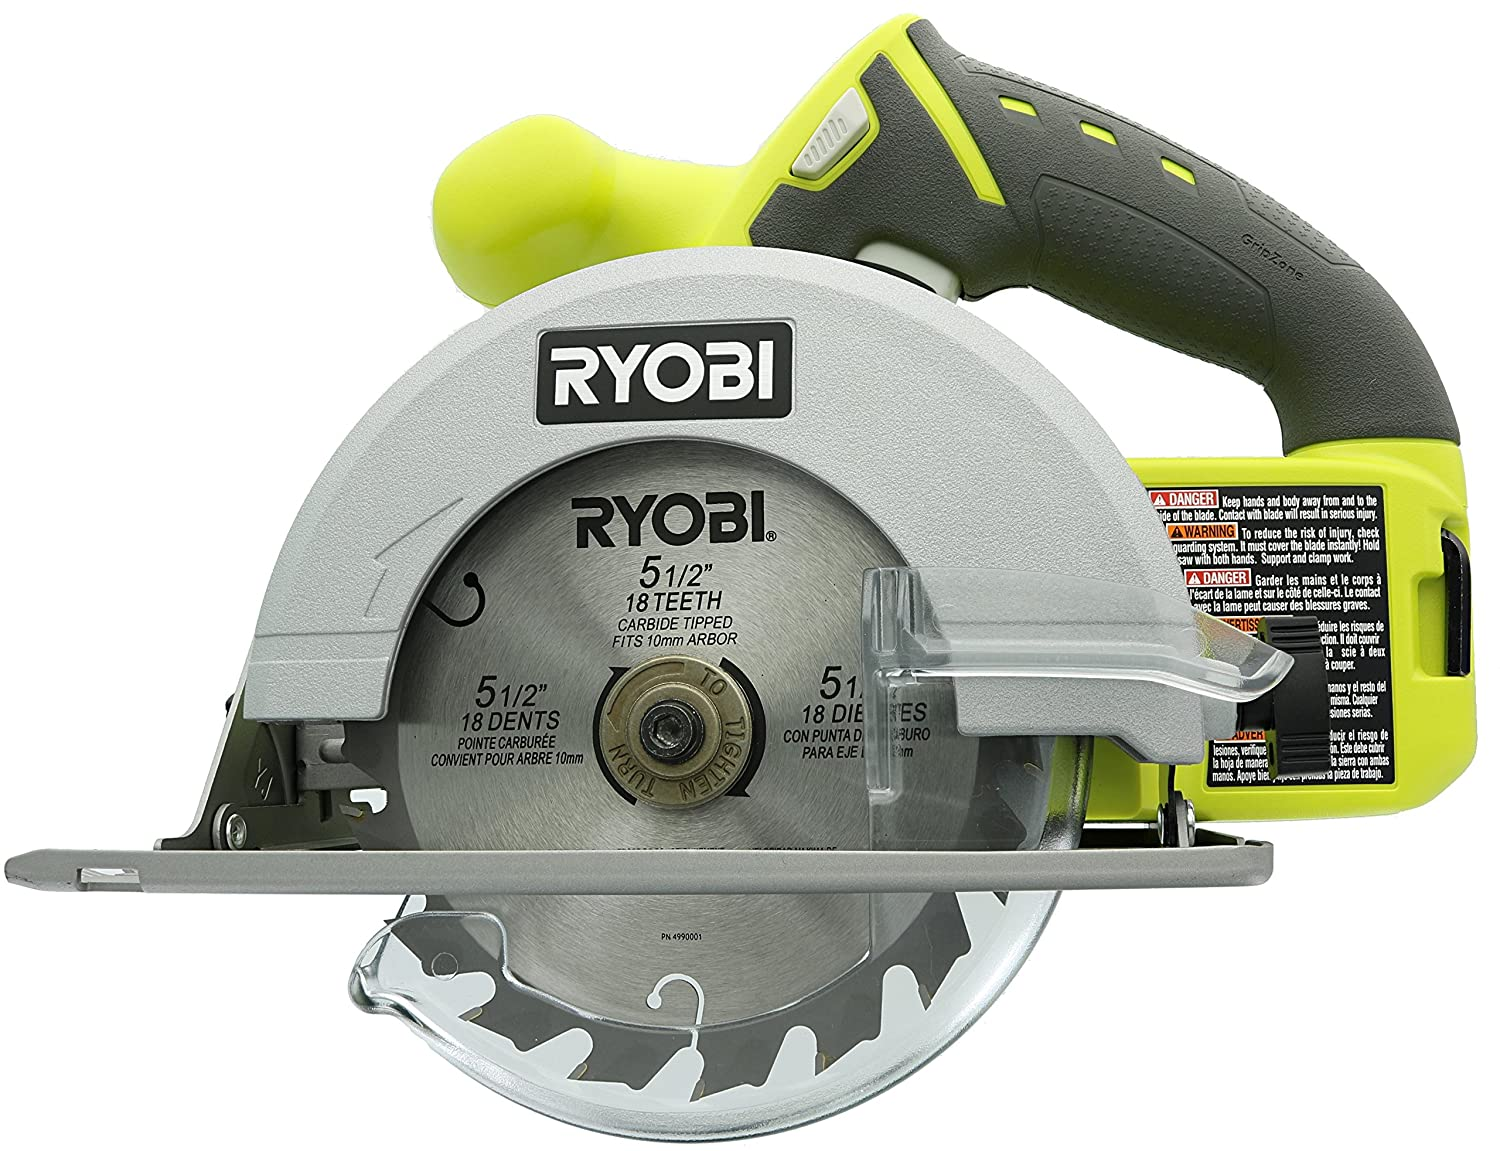 Installing ryobi circular saw blade image collections wiring table ryobi p504g one 18 v lithium ion cordless 5 12 inch circular saw ryobi p504g one keyboard keysfo Image collections